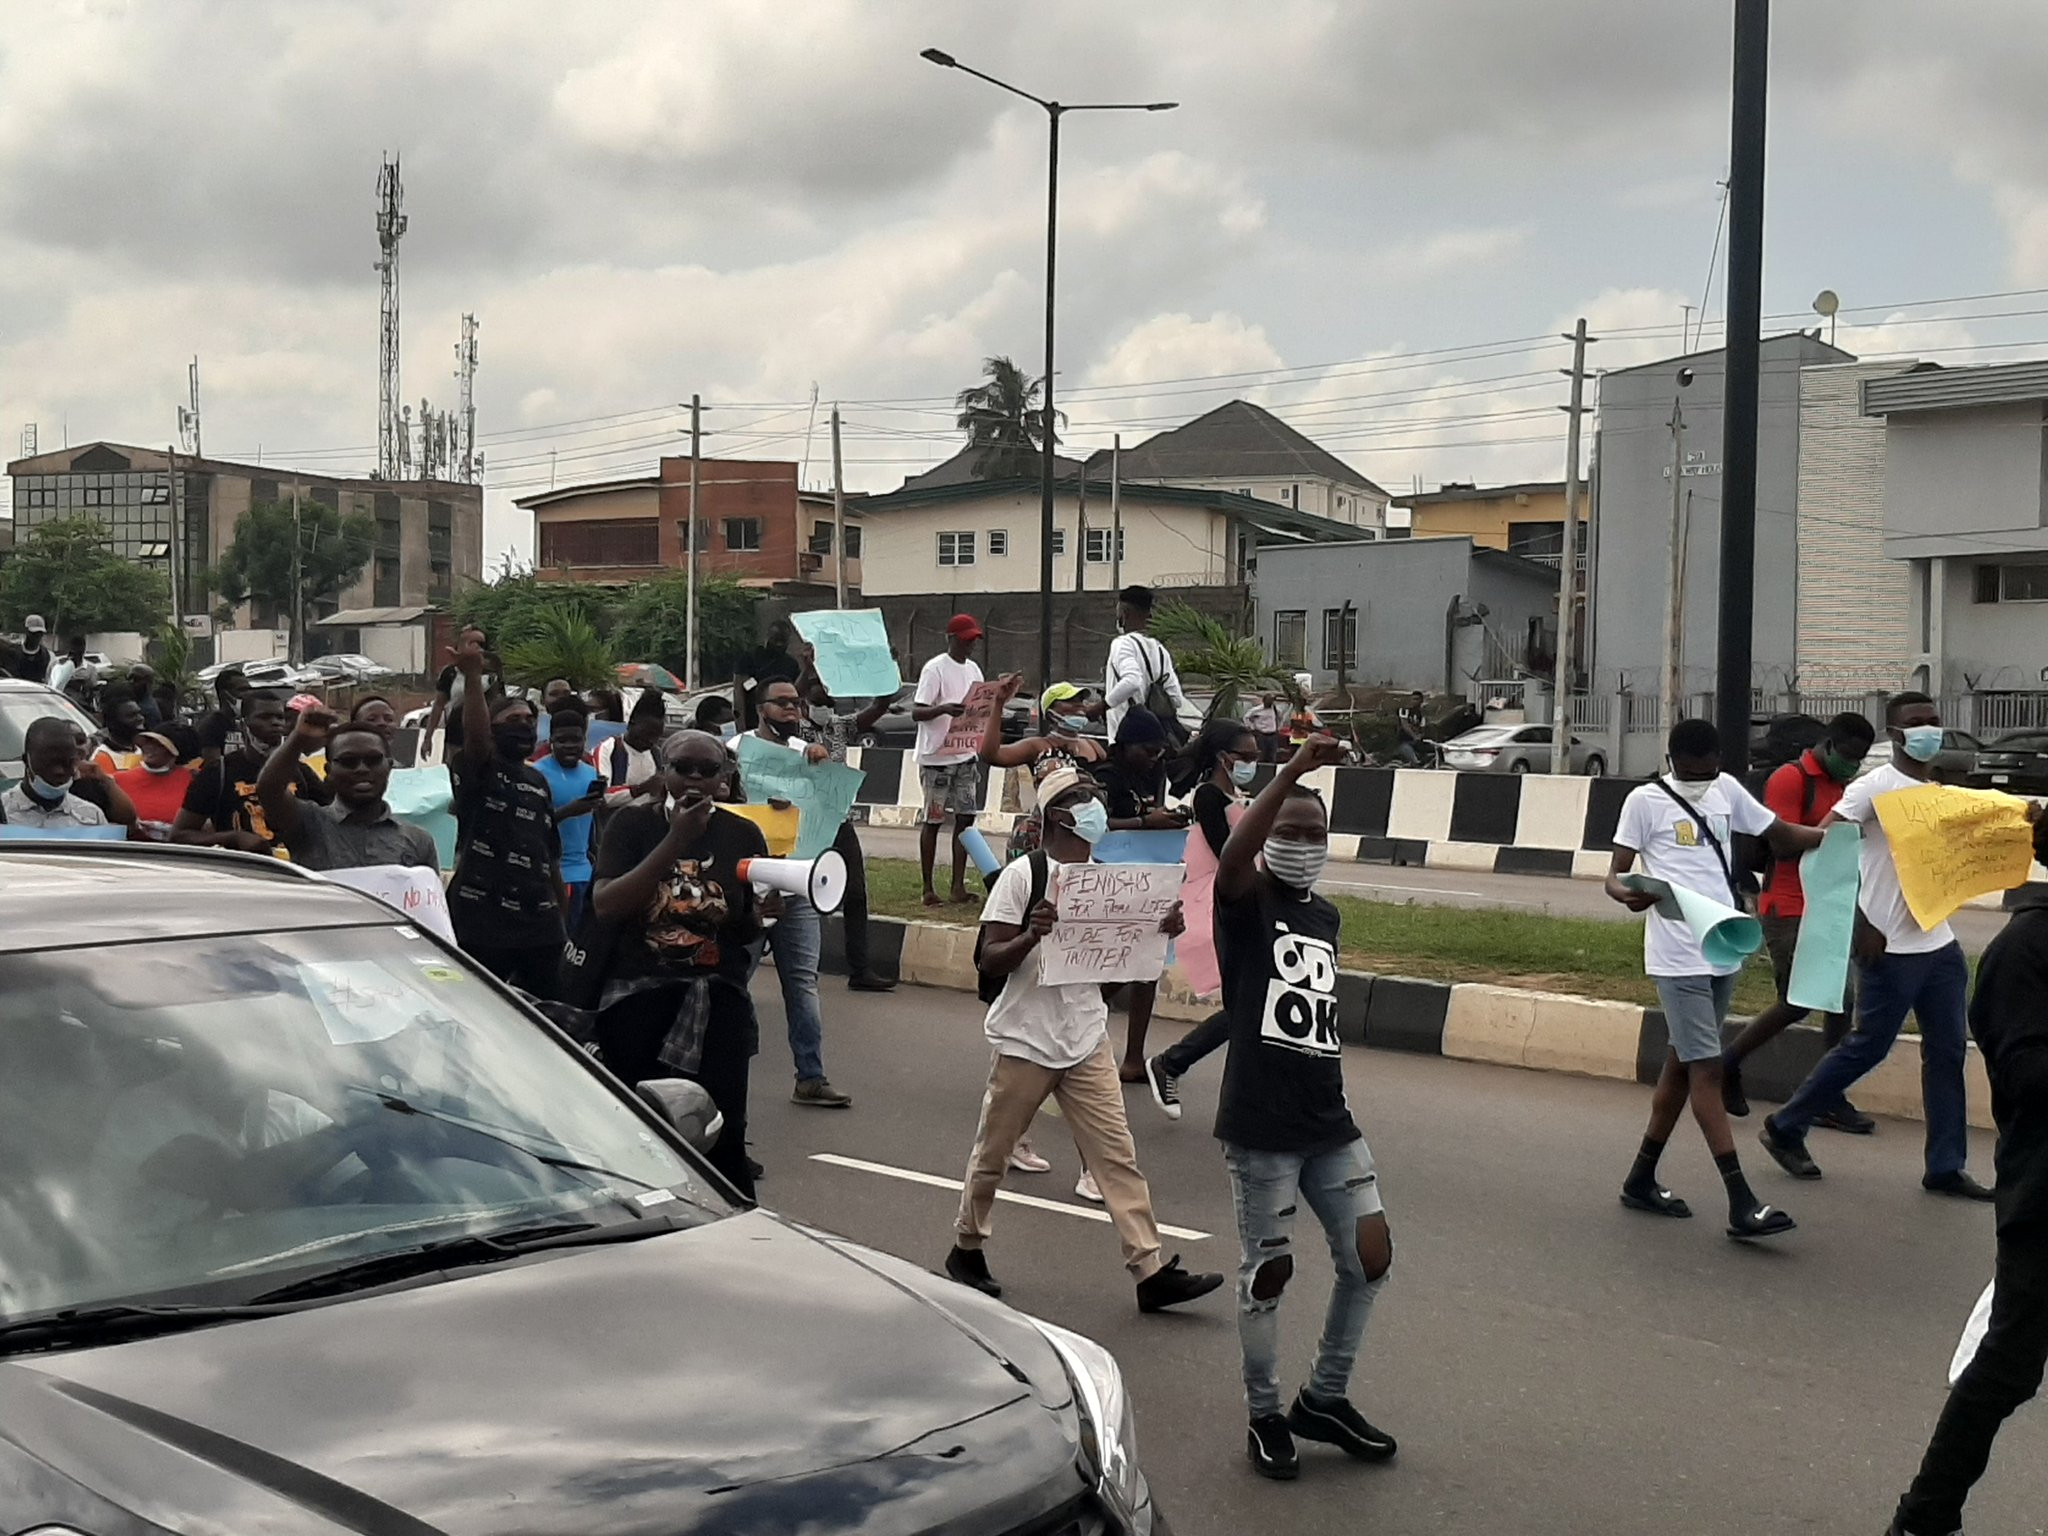 #EndSARS protesters block roads leading to Murtala Mohammed International Airport Lagos (photos/video)